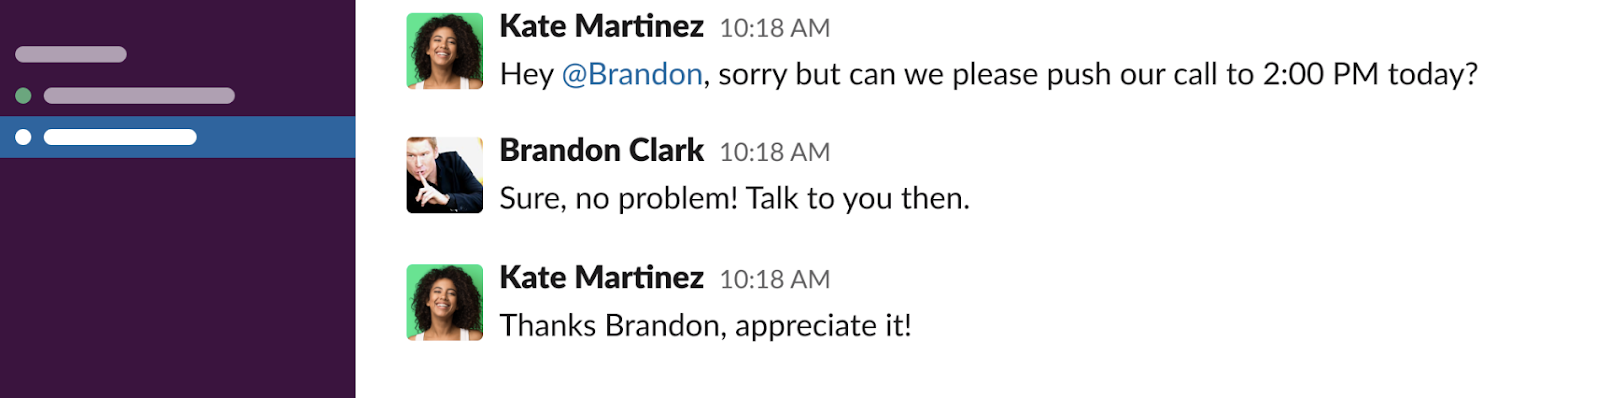 Geekbot and Slack allow for clients and coaches to easily connect and communicate.